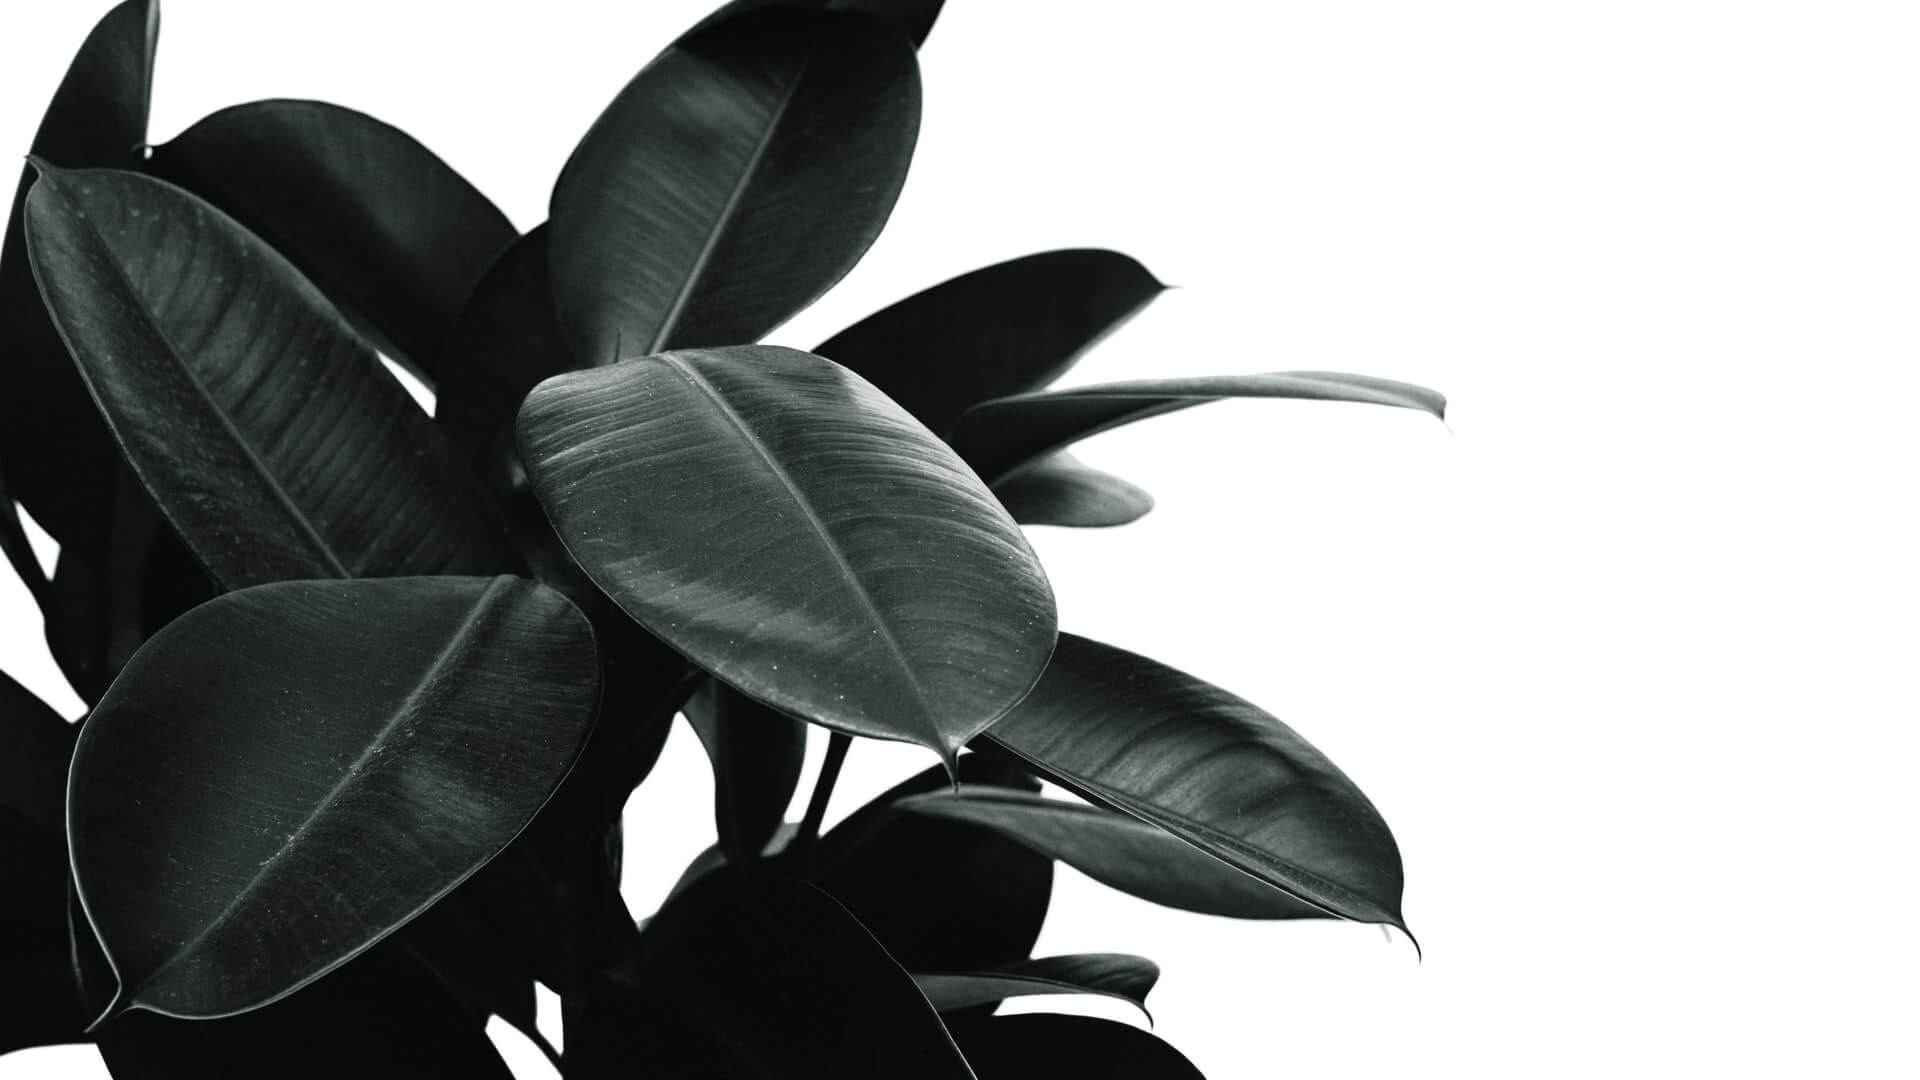 Rubber tree plants, or Ficus elastica, are an attractive and low-maintenance option for indoor plant lovers. The tree's vibrant and leathery le